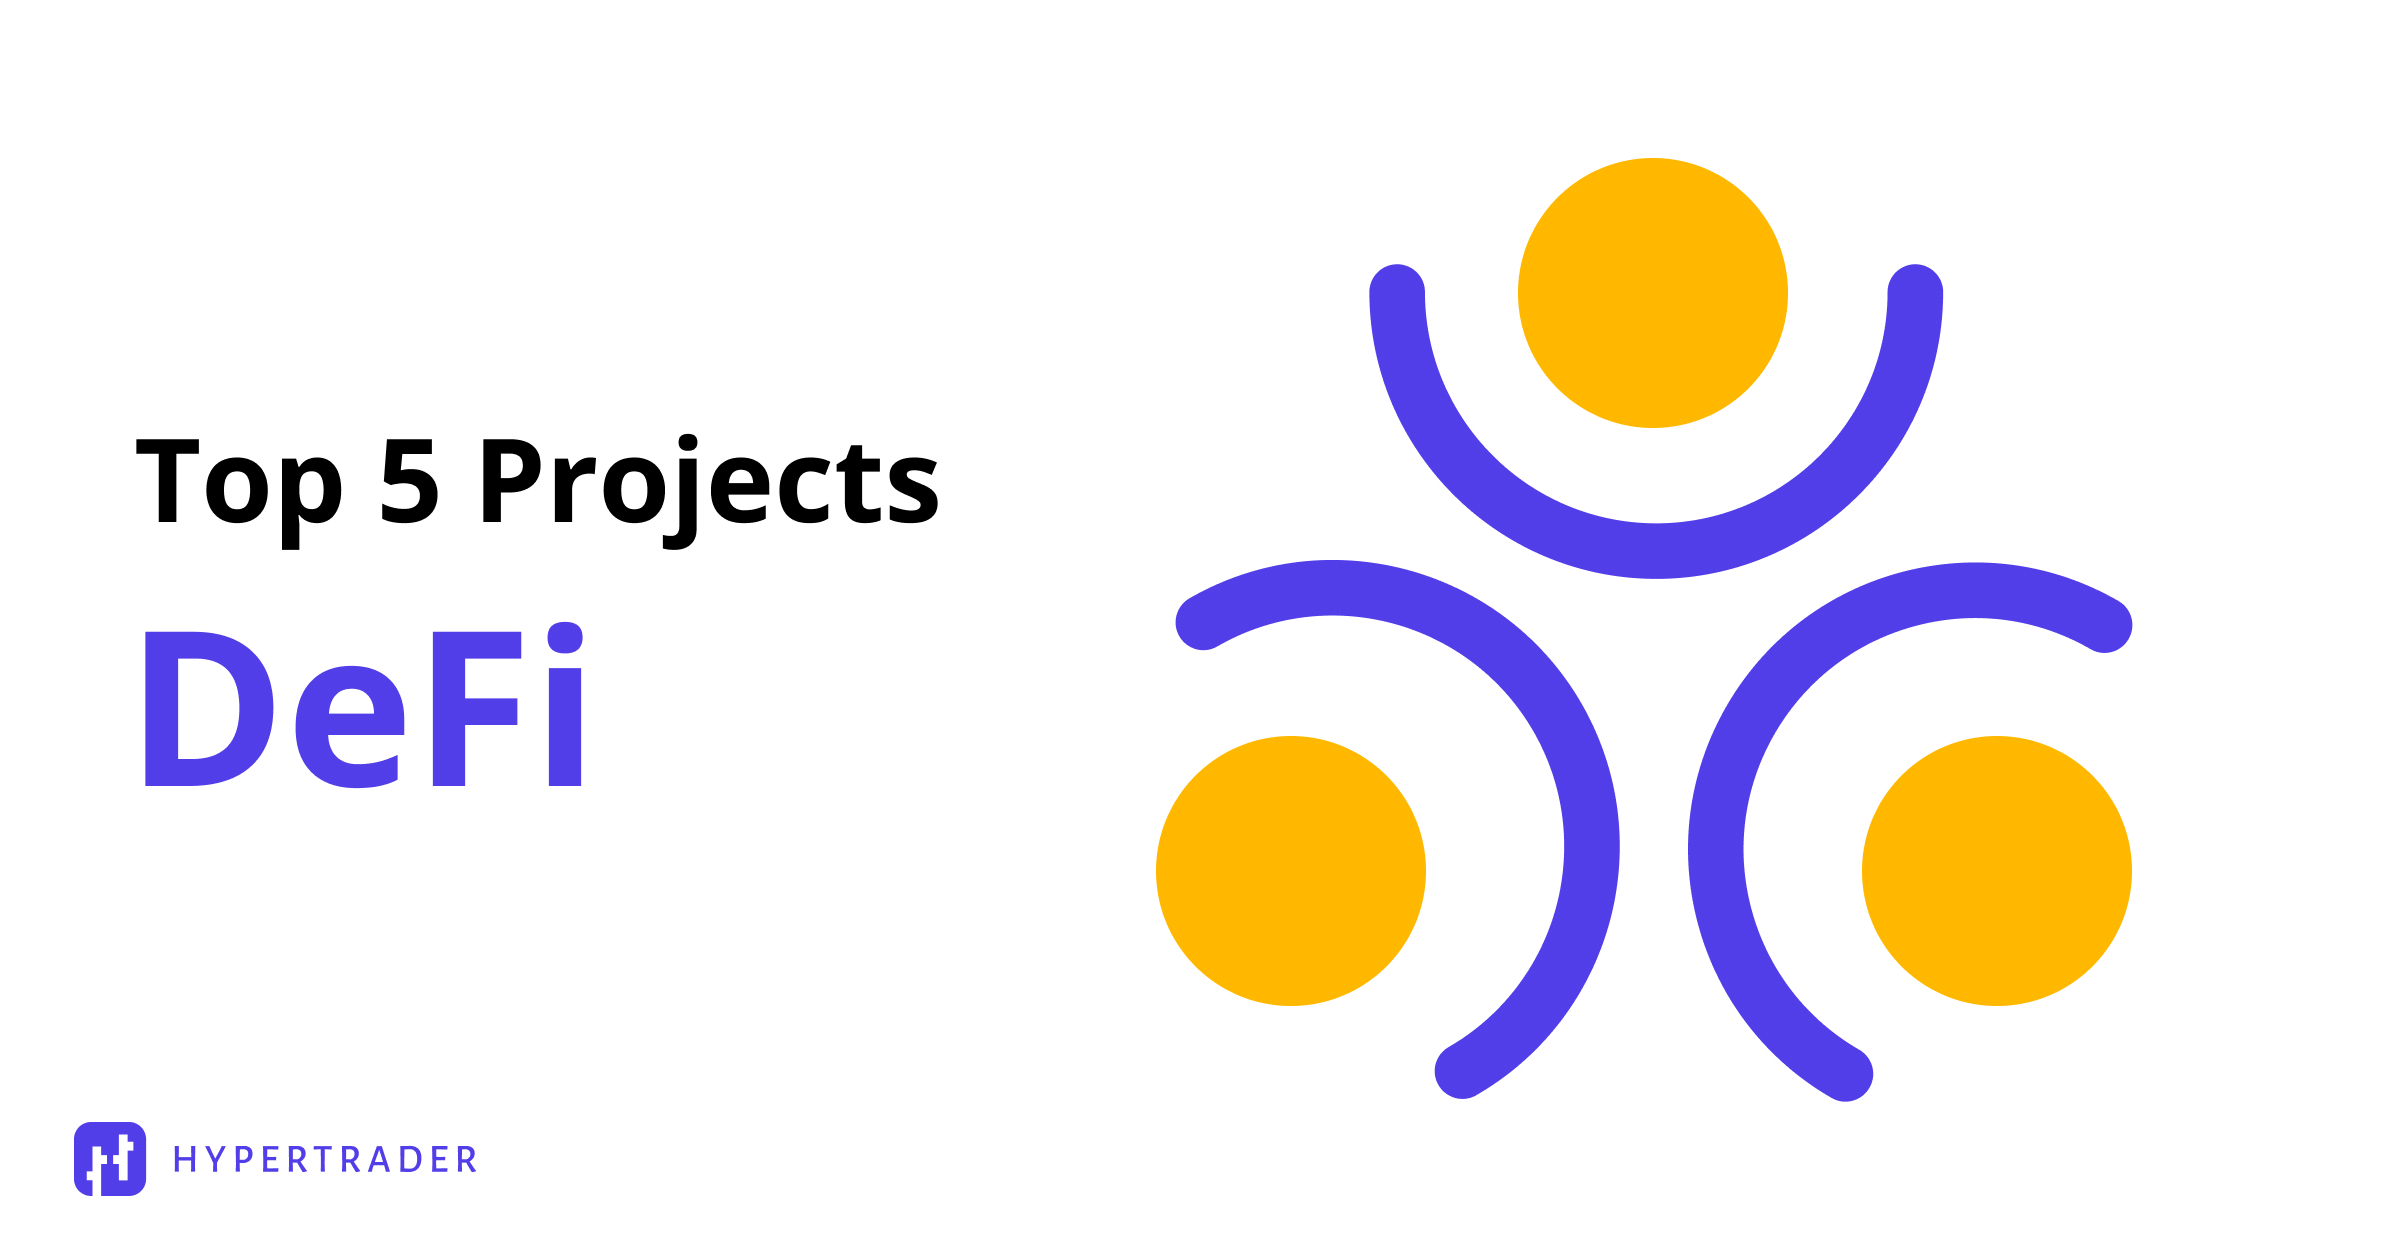 Top 5 DeFi Projects